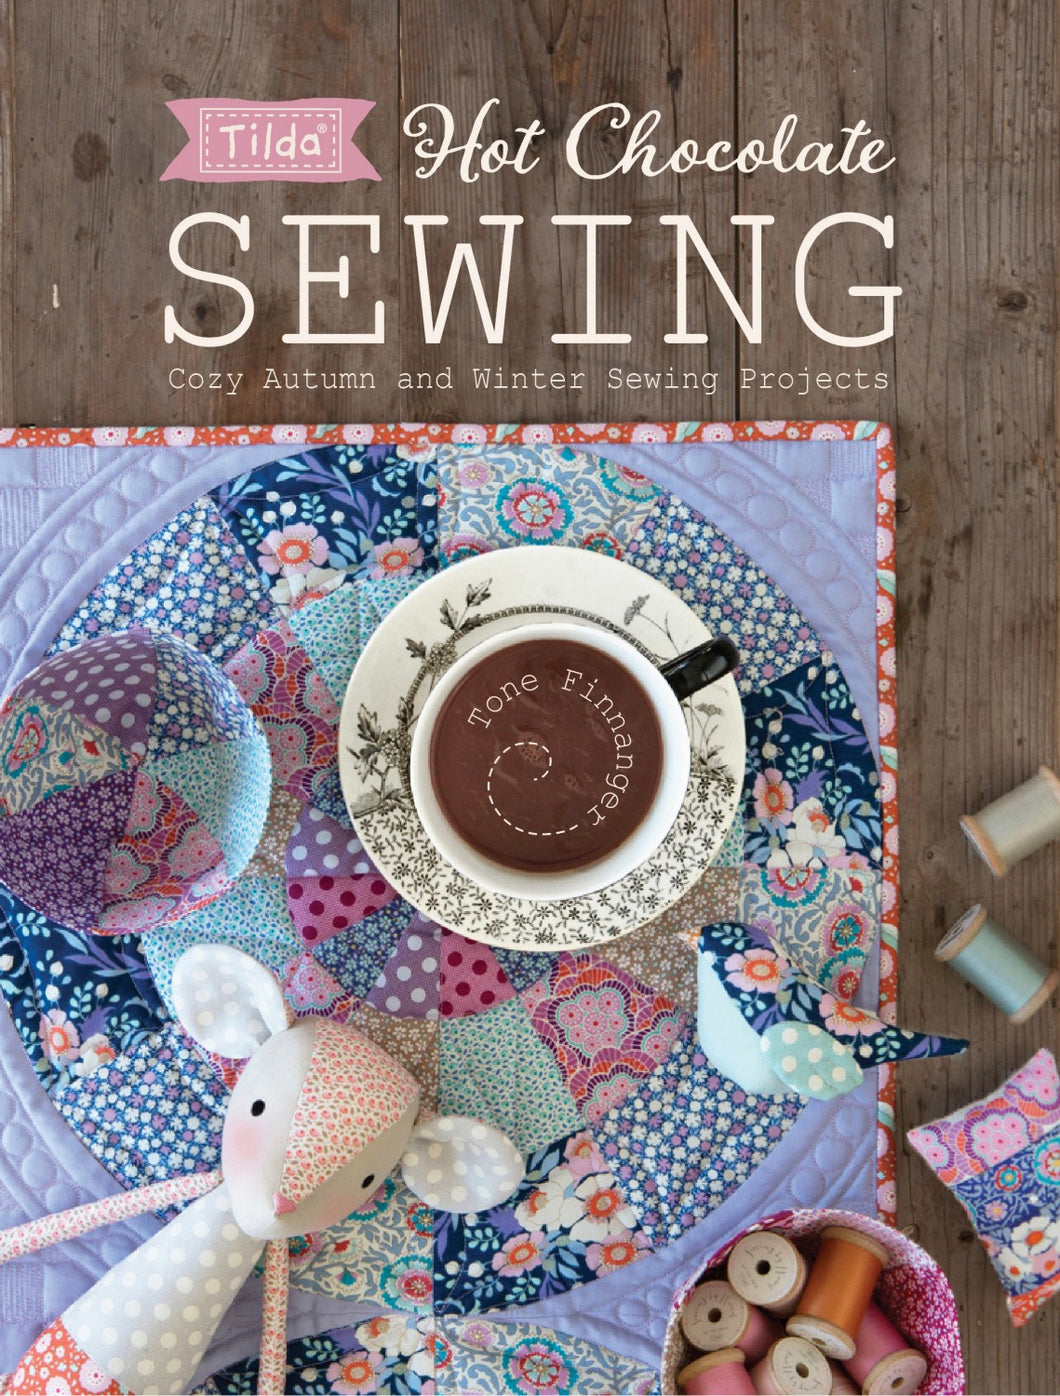 Hot Chocolate Sewing book